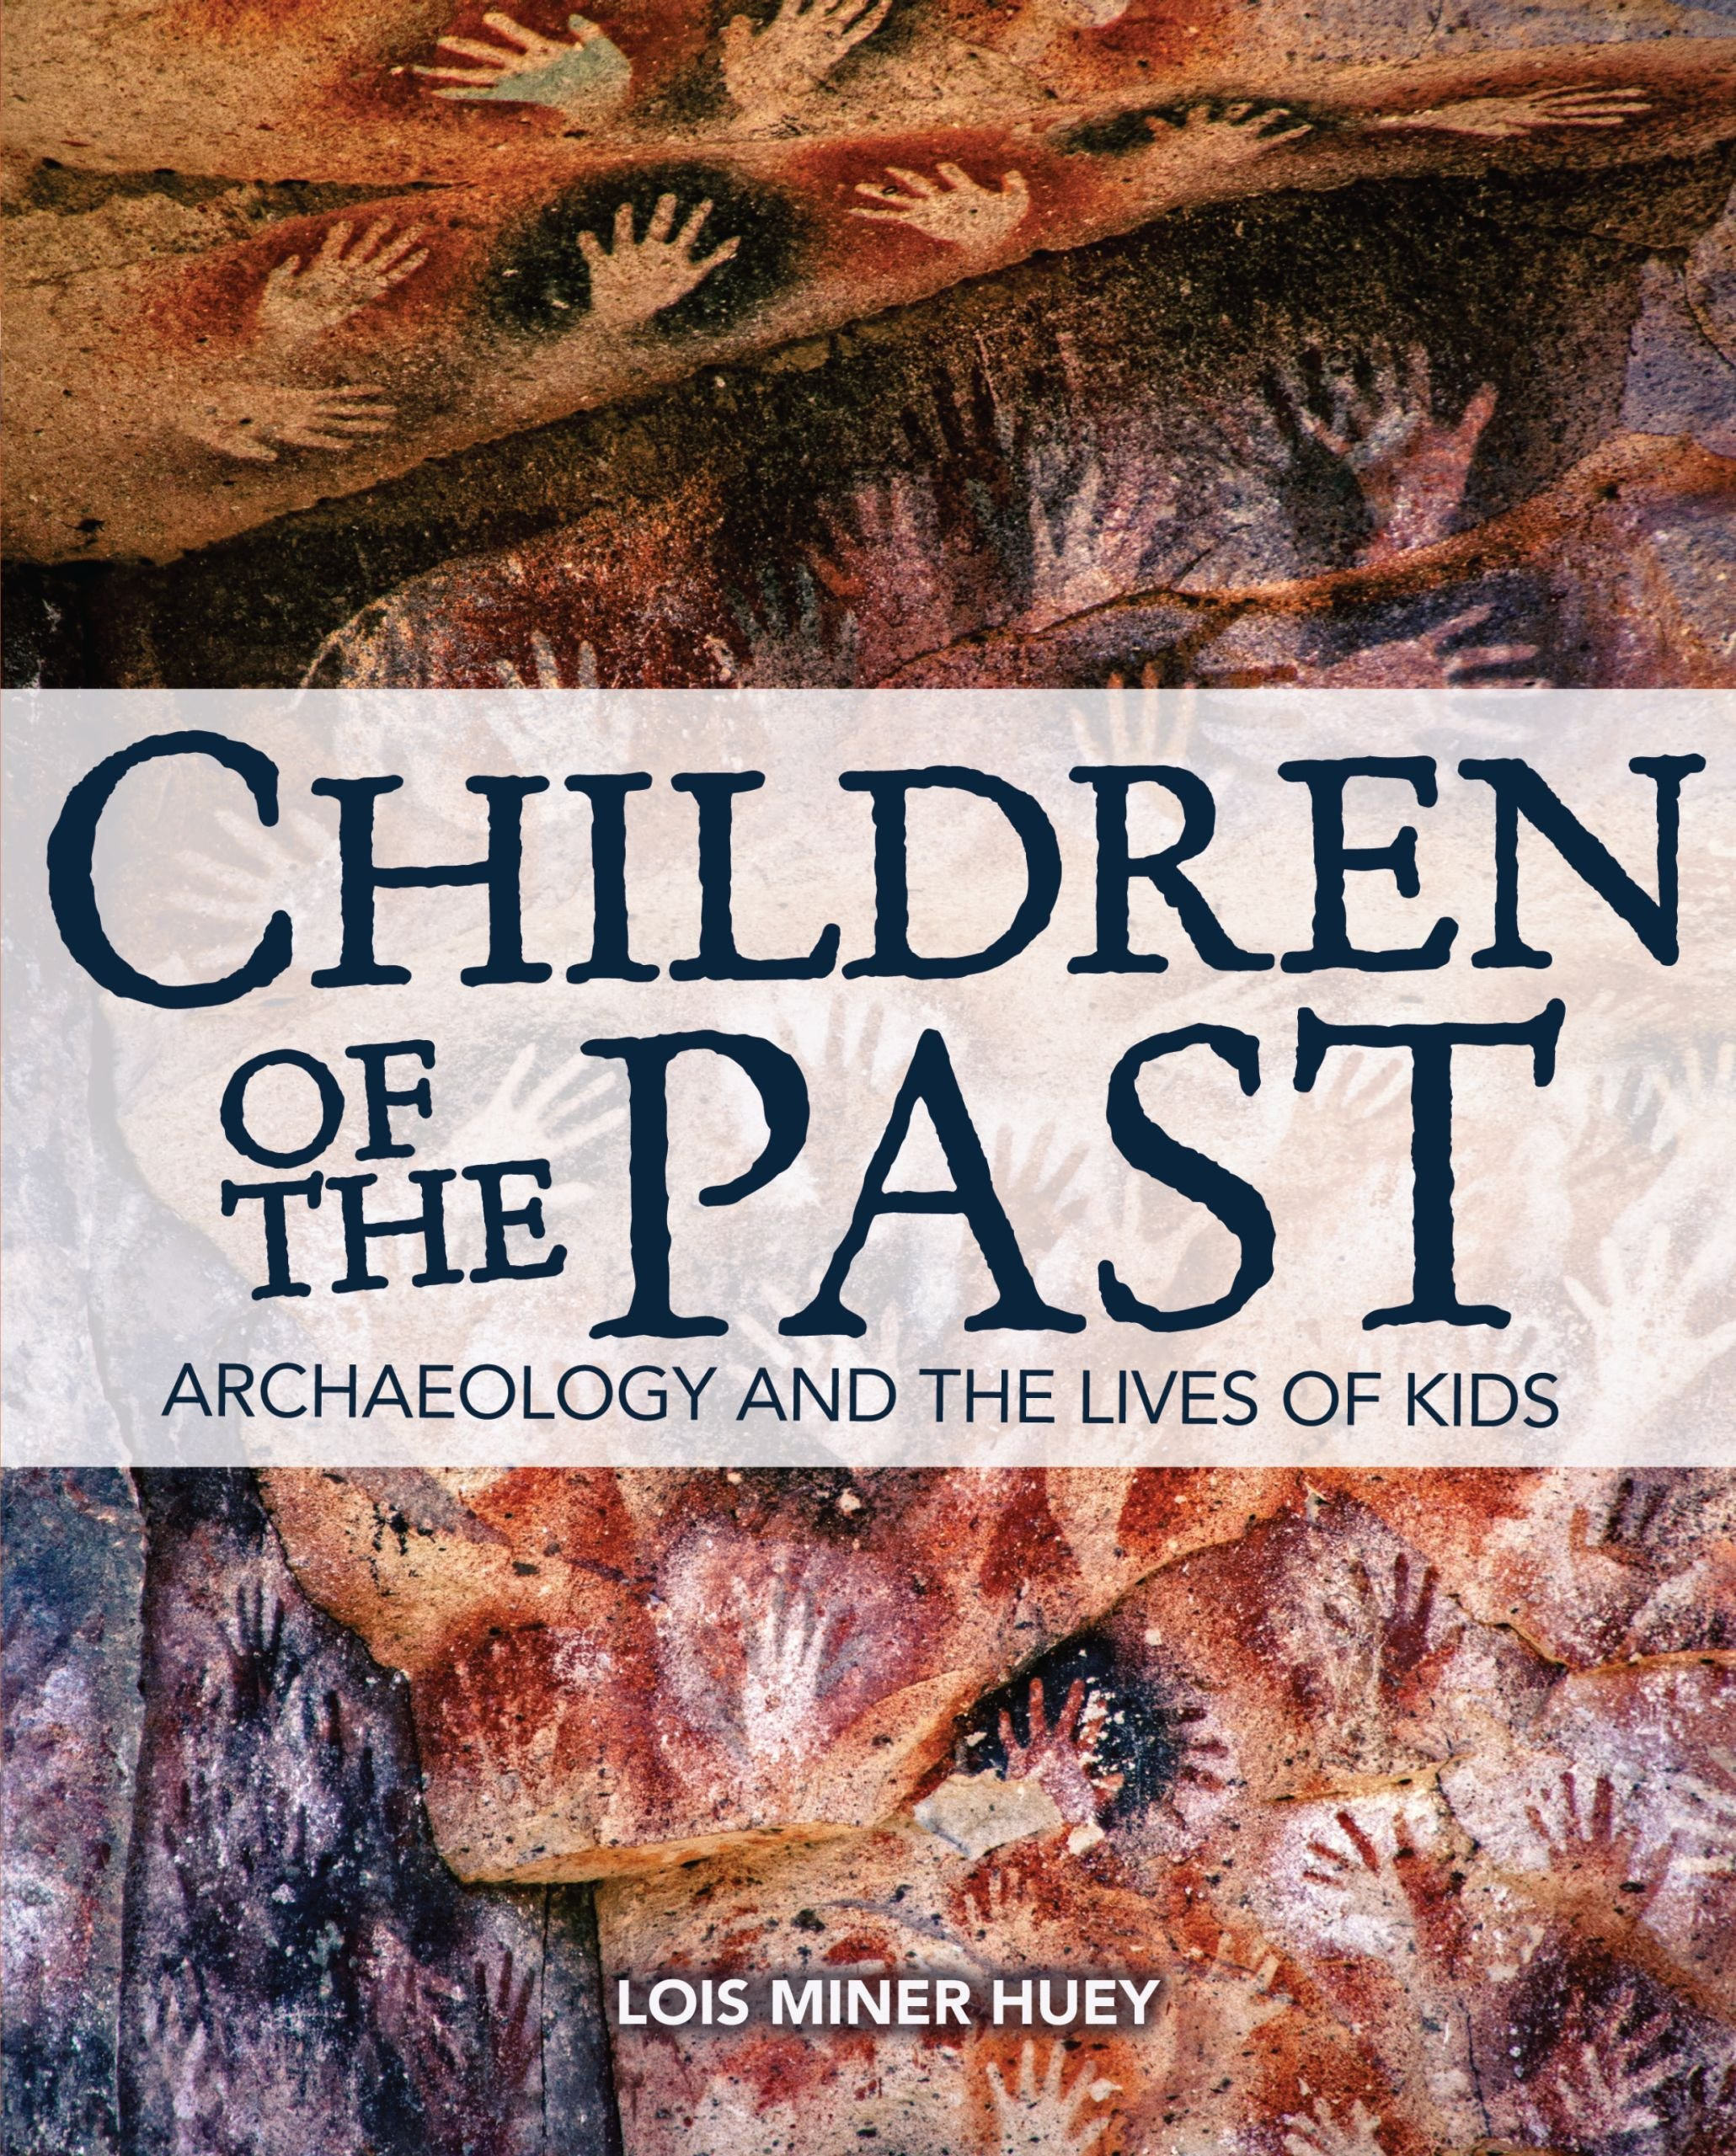 children-of-the-past-archaeology-and-the-lives-of-kids